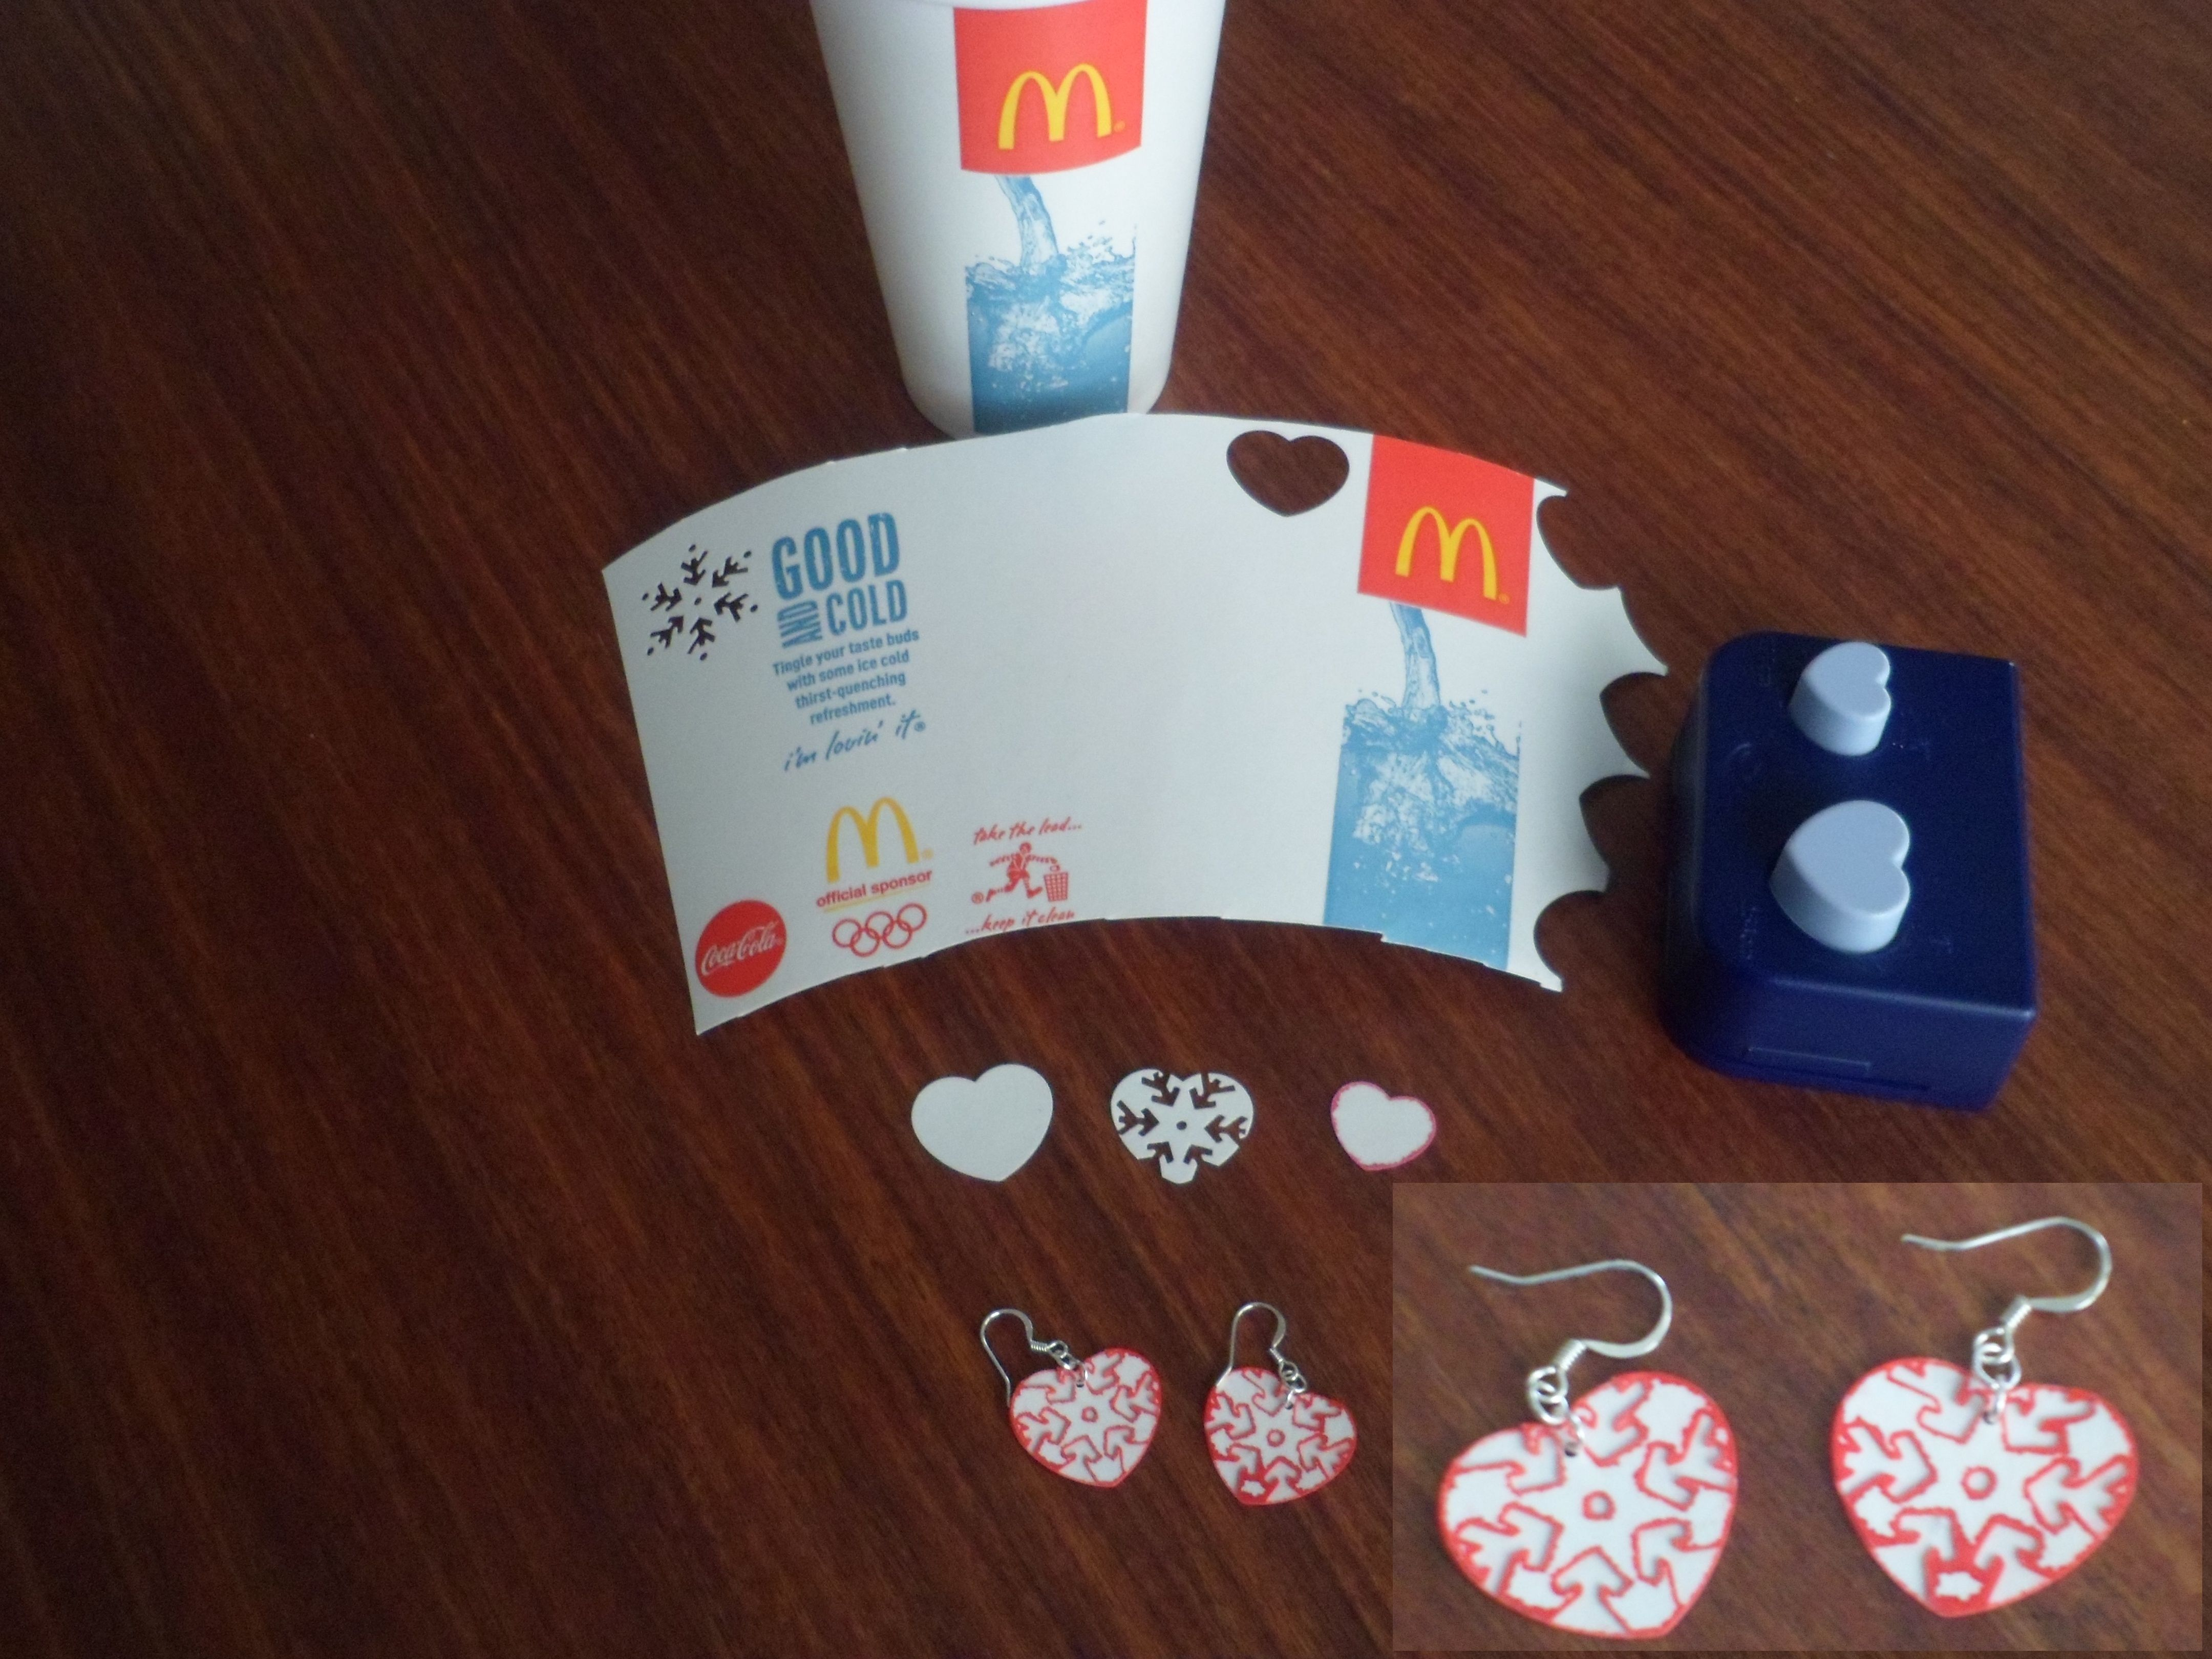 Earrings from a McDonalds cup (or similar).